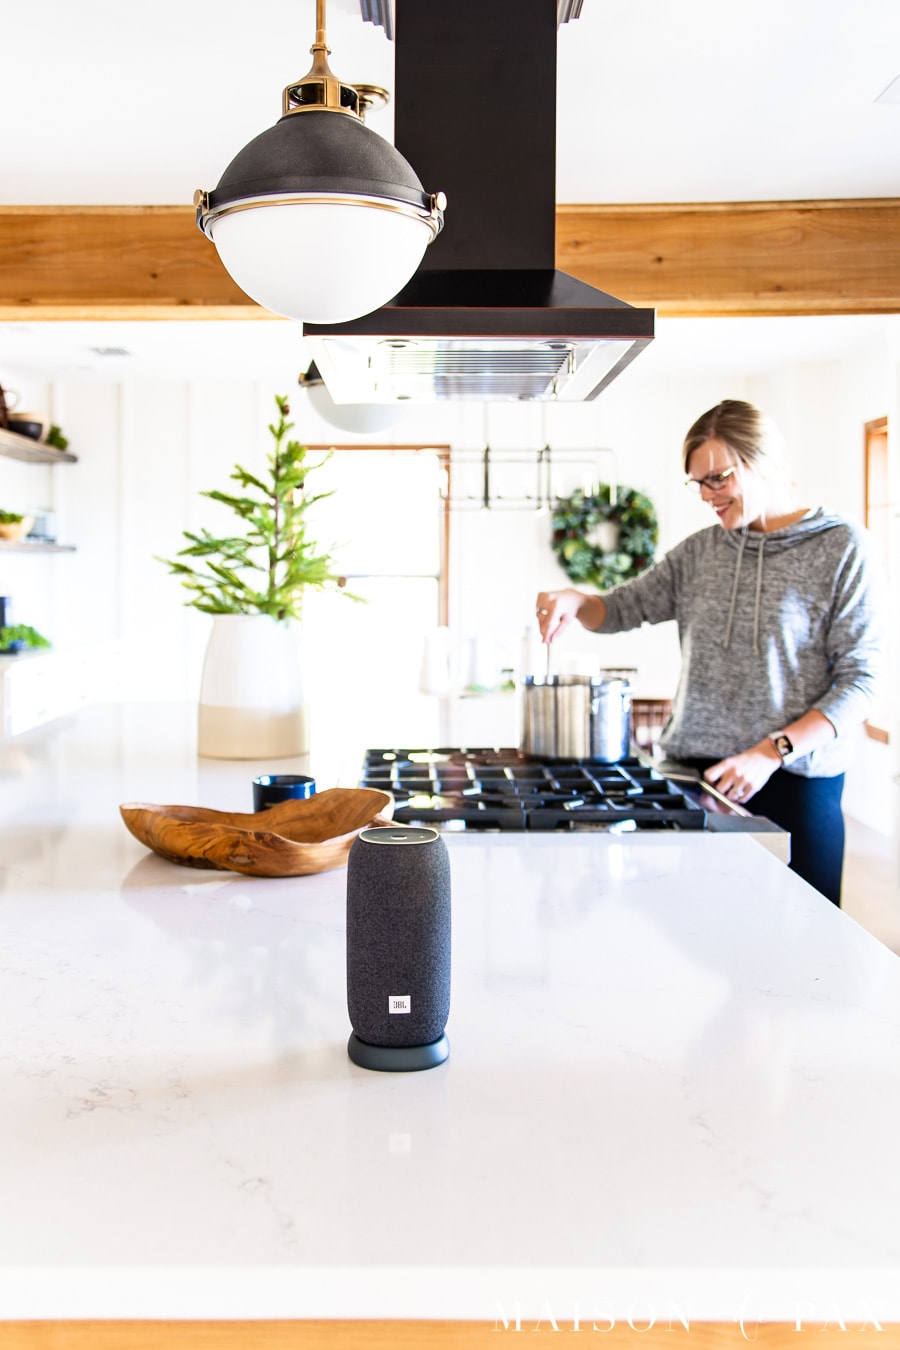 woman cooking in background with little bluetooth speaker in foreground | Maison de Pax